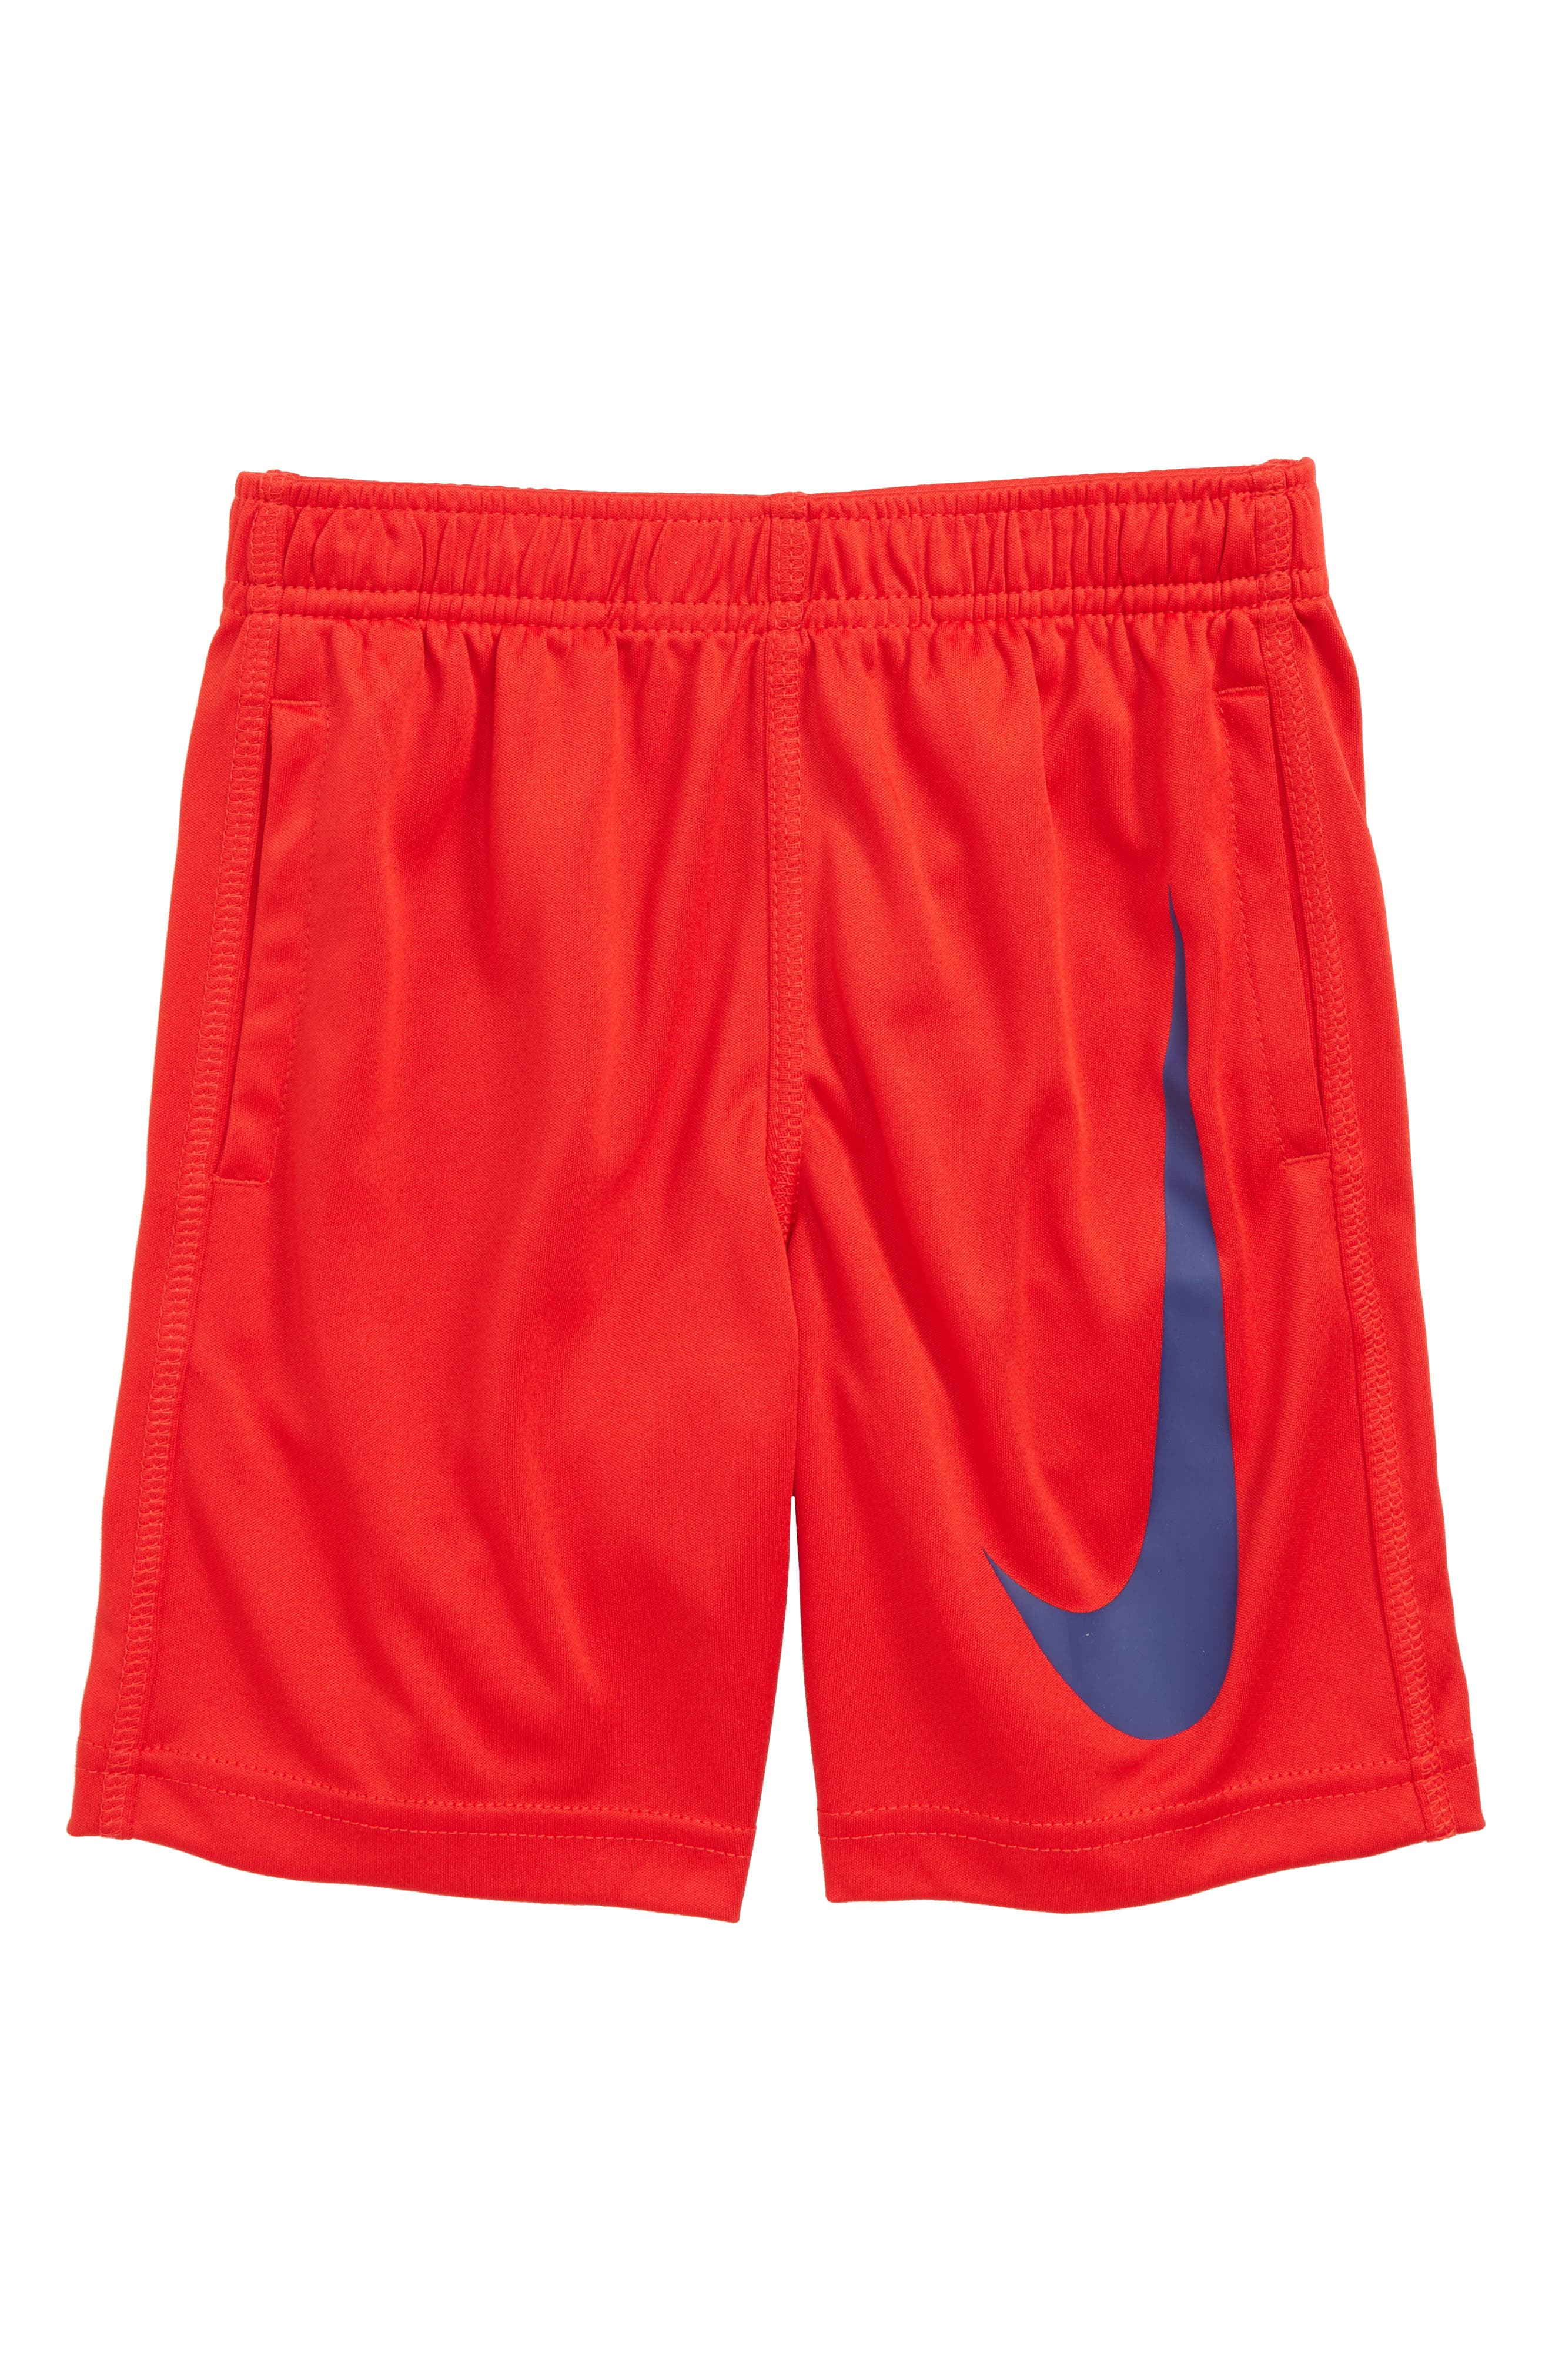 Dry Shorts,                         Main,                         color, University Red